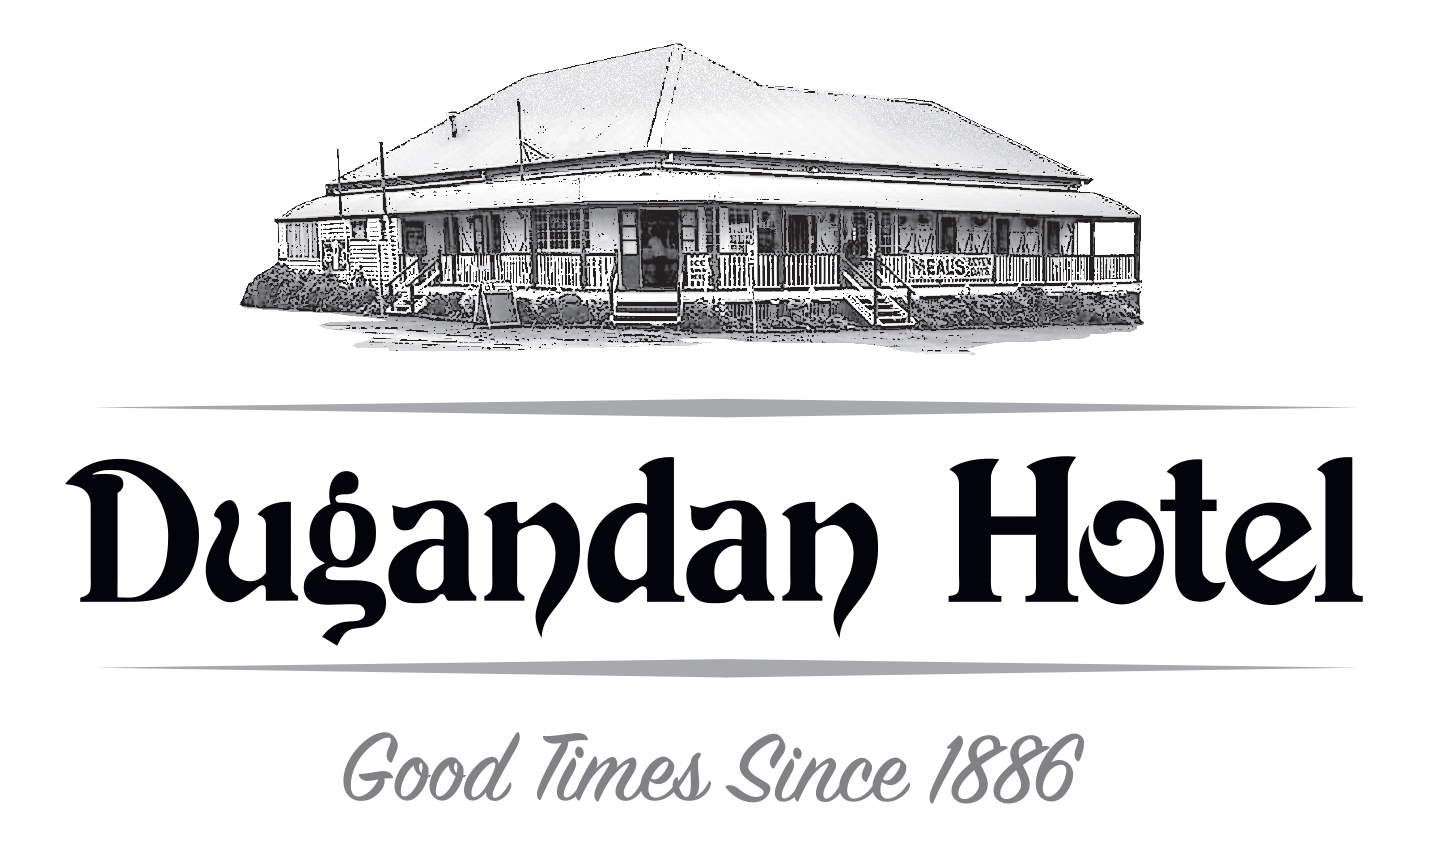 Dugandan Hotel - Whitsundays Tourism